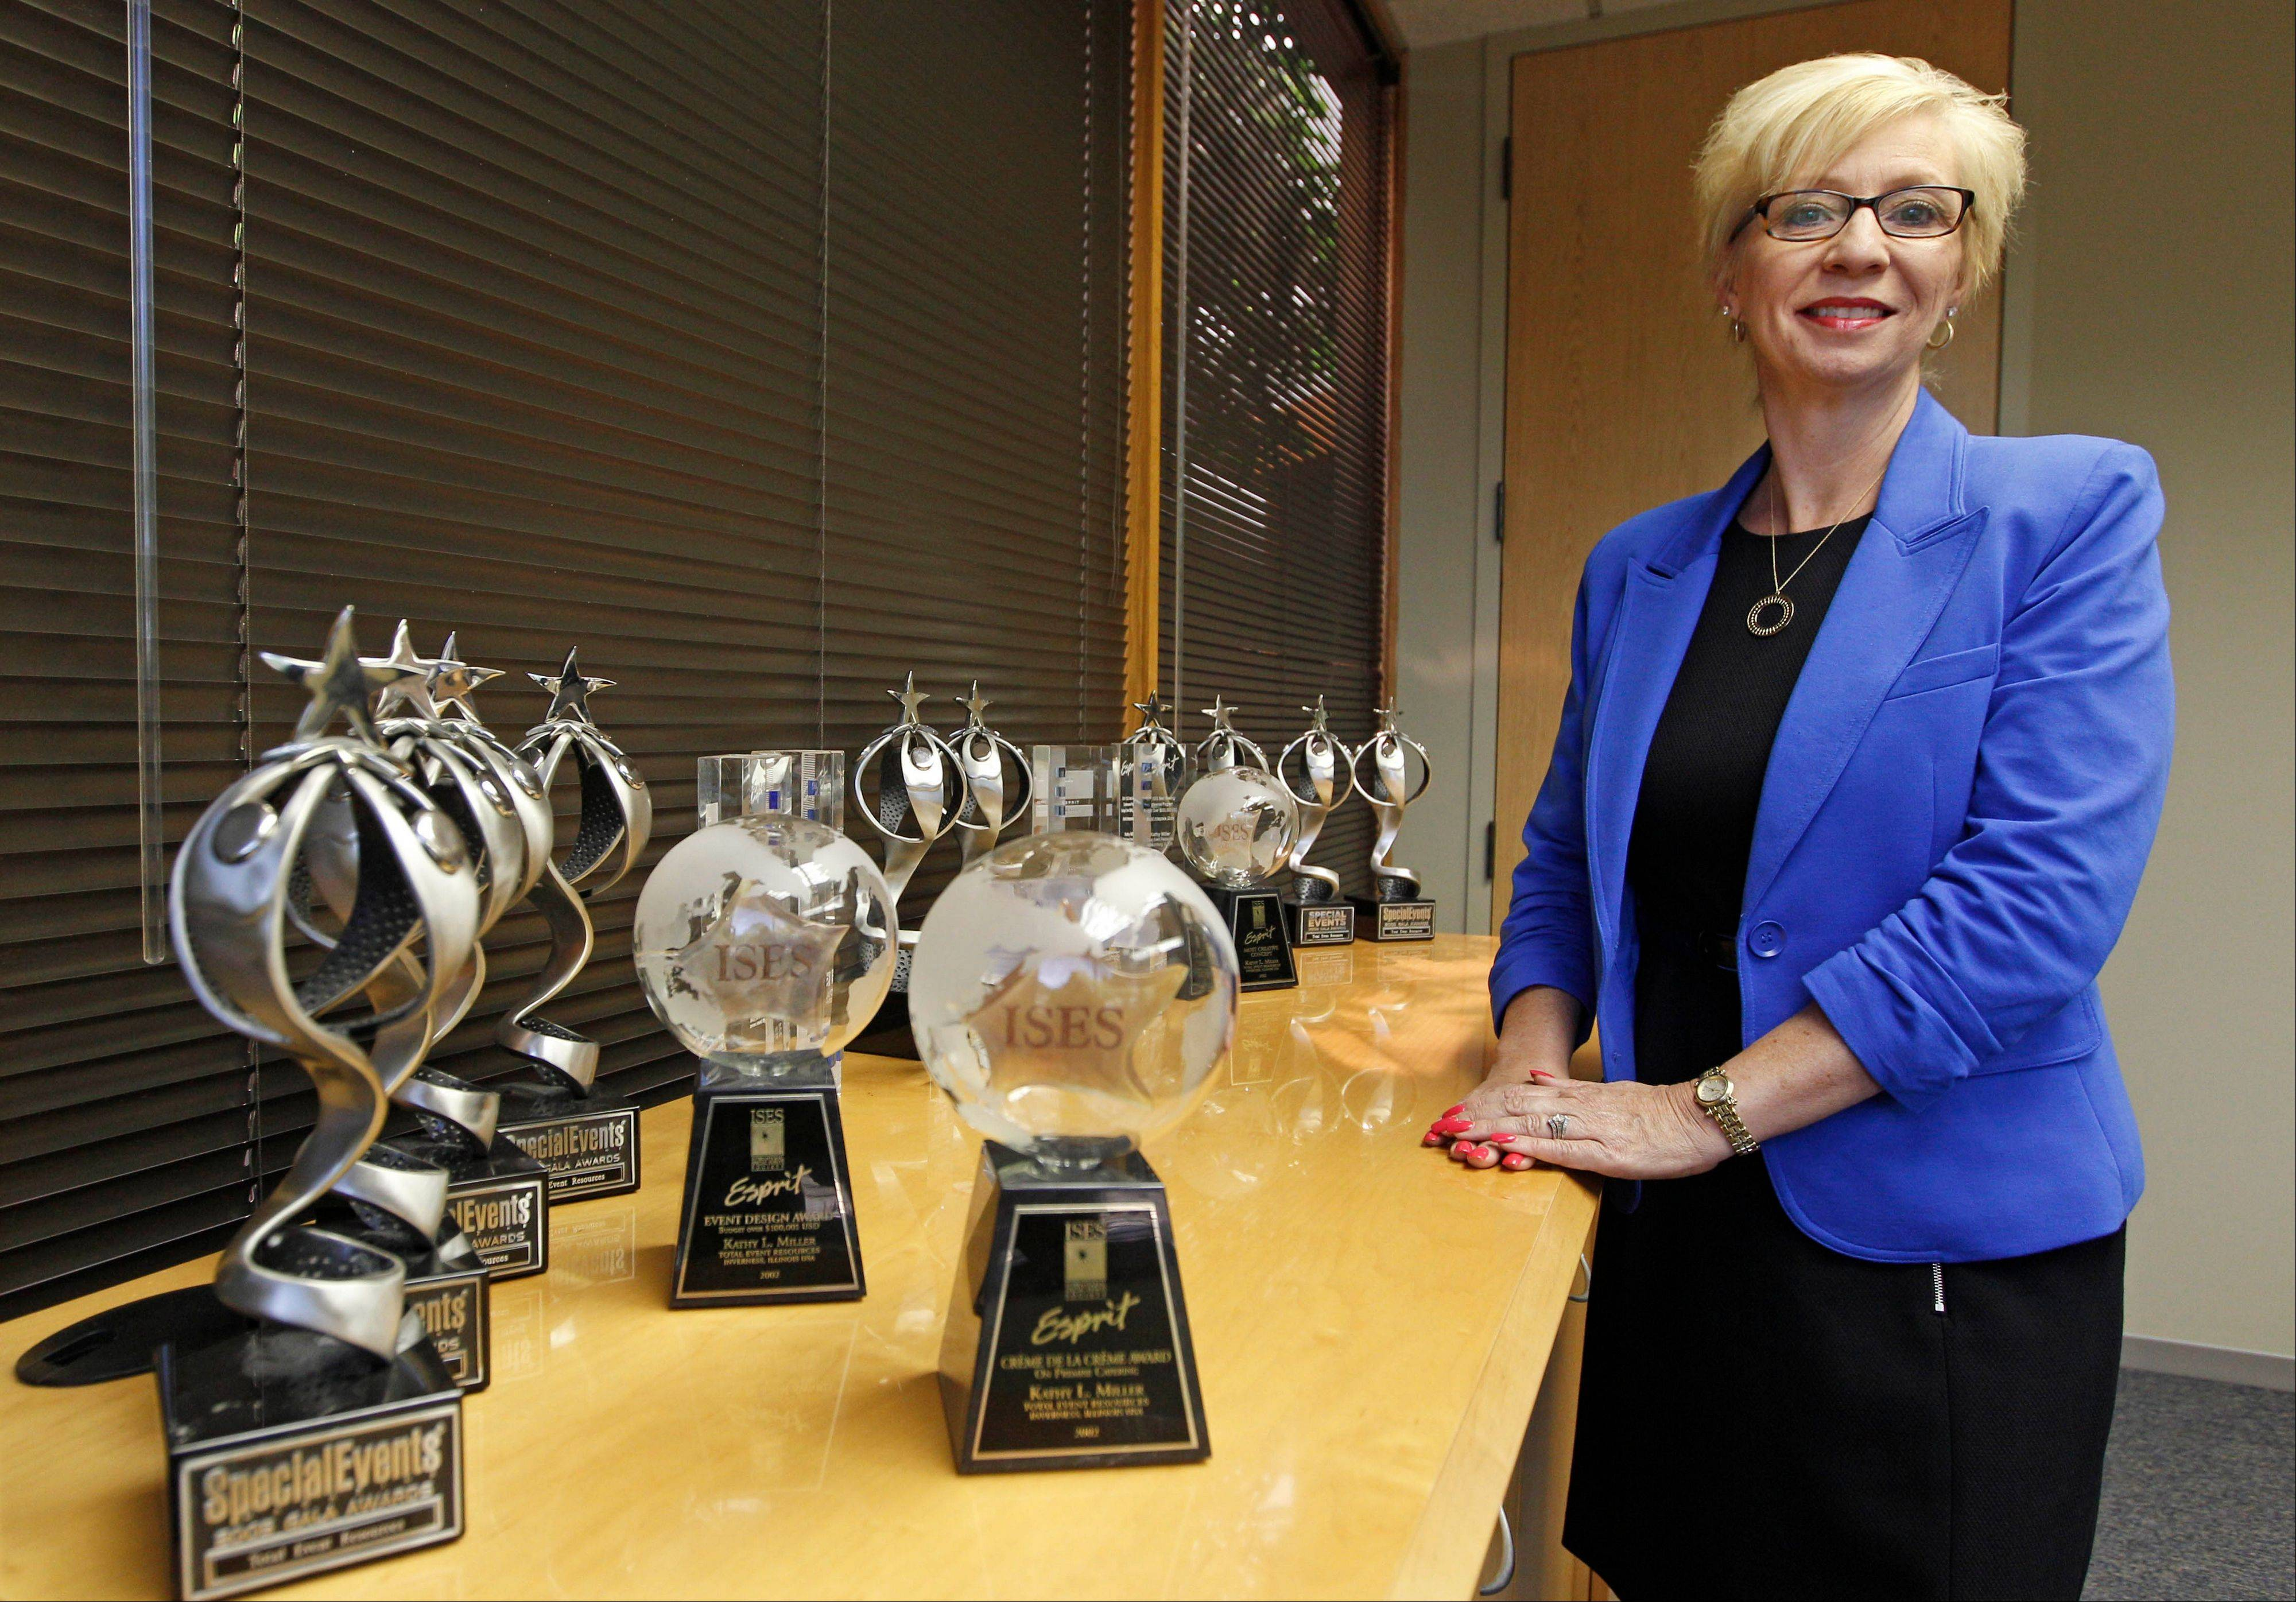 Kathy Miller, president of Total Event Resources, stands next to trophies awarded to her company in her offices in Schaumburg. In 2008, her events planning company was having its best year ever. Then the financial crisis sent the stock market tumbling and the corporate customers who had kept Miller's company busy, stopped calling.